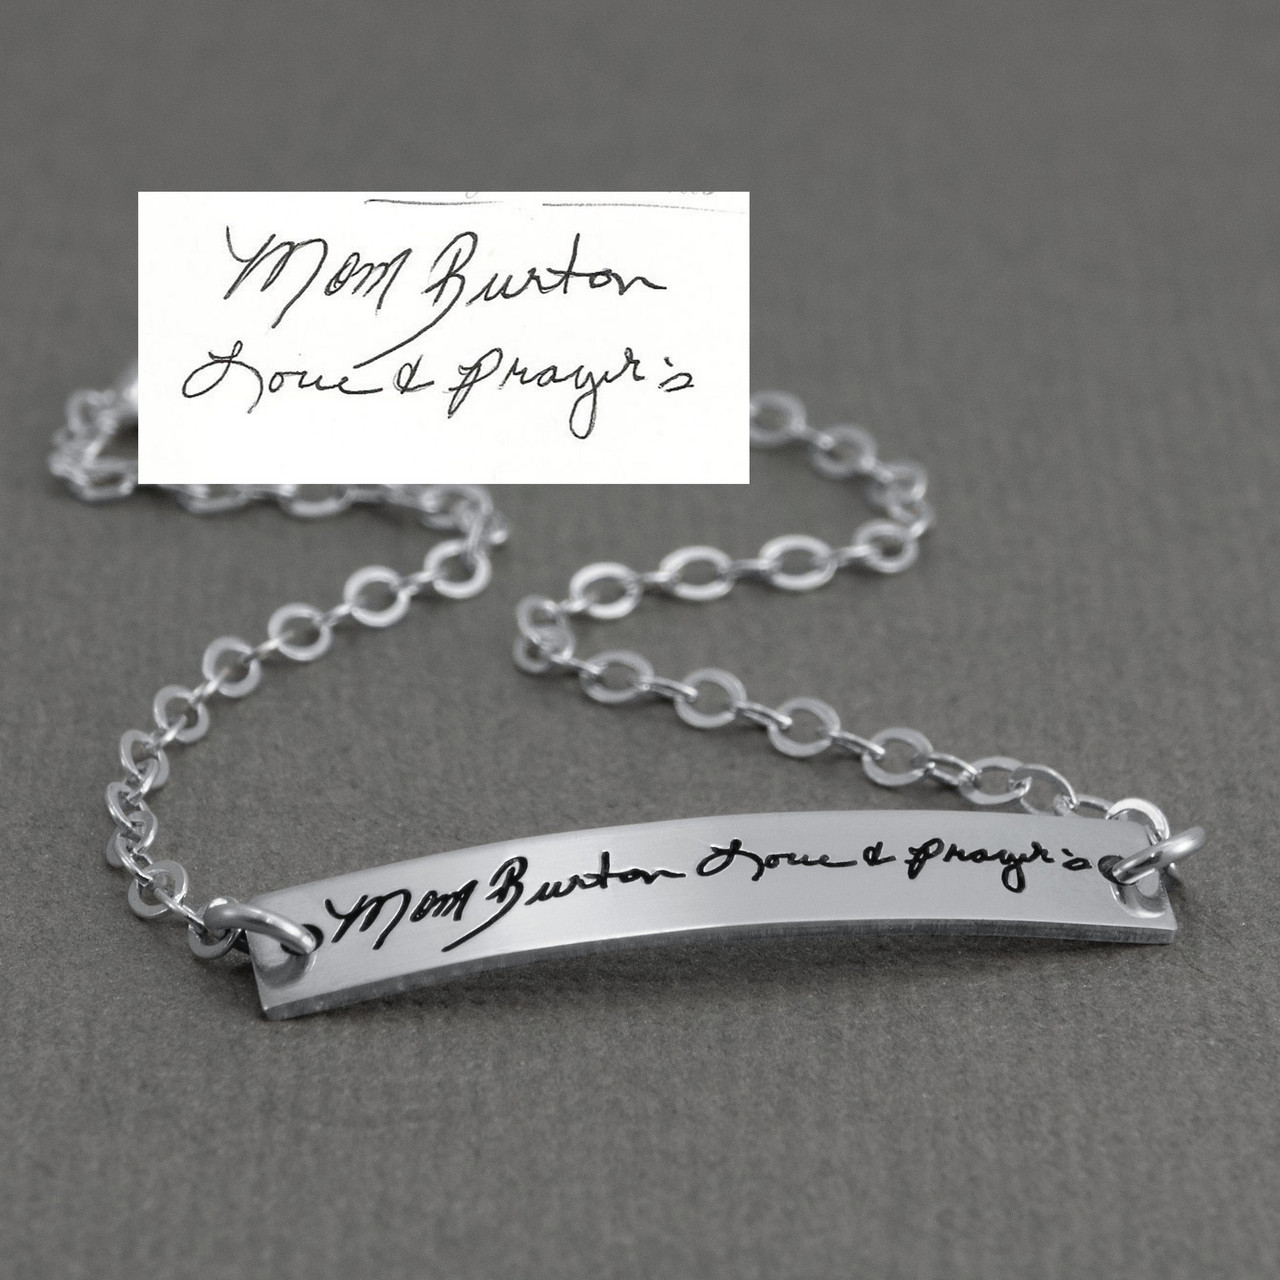 Dainty bracelet with your actual writing in sterling silver, shown from the side close up, with the original handwriting